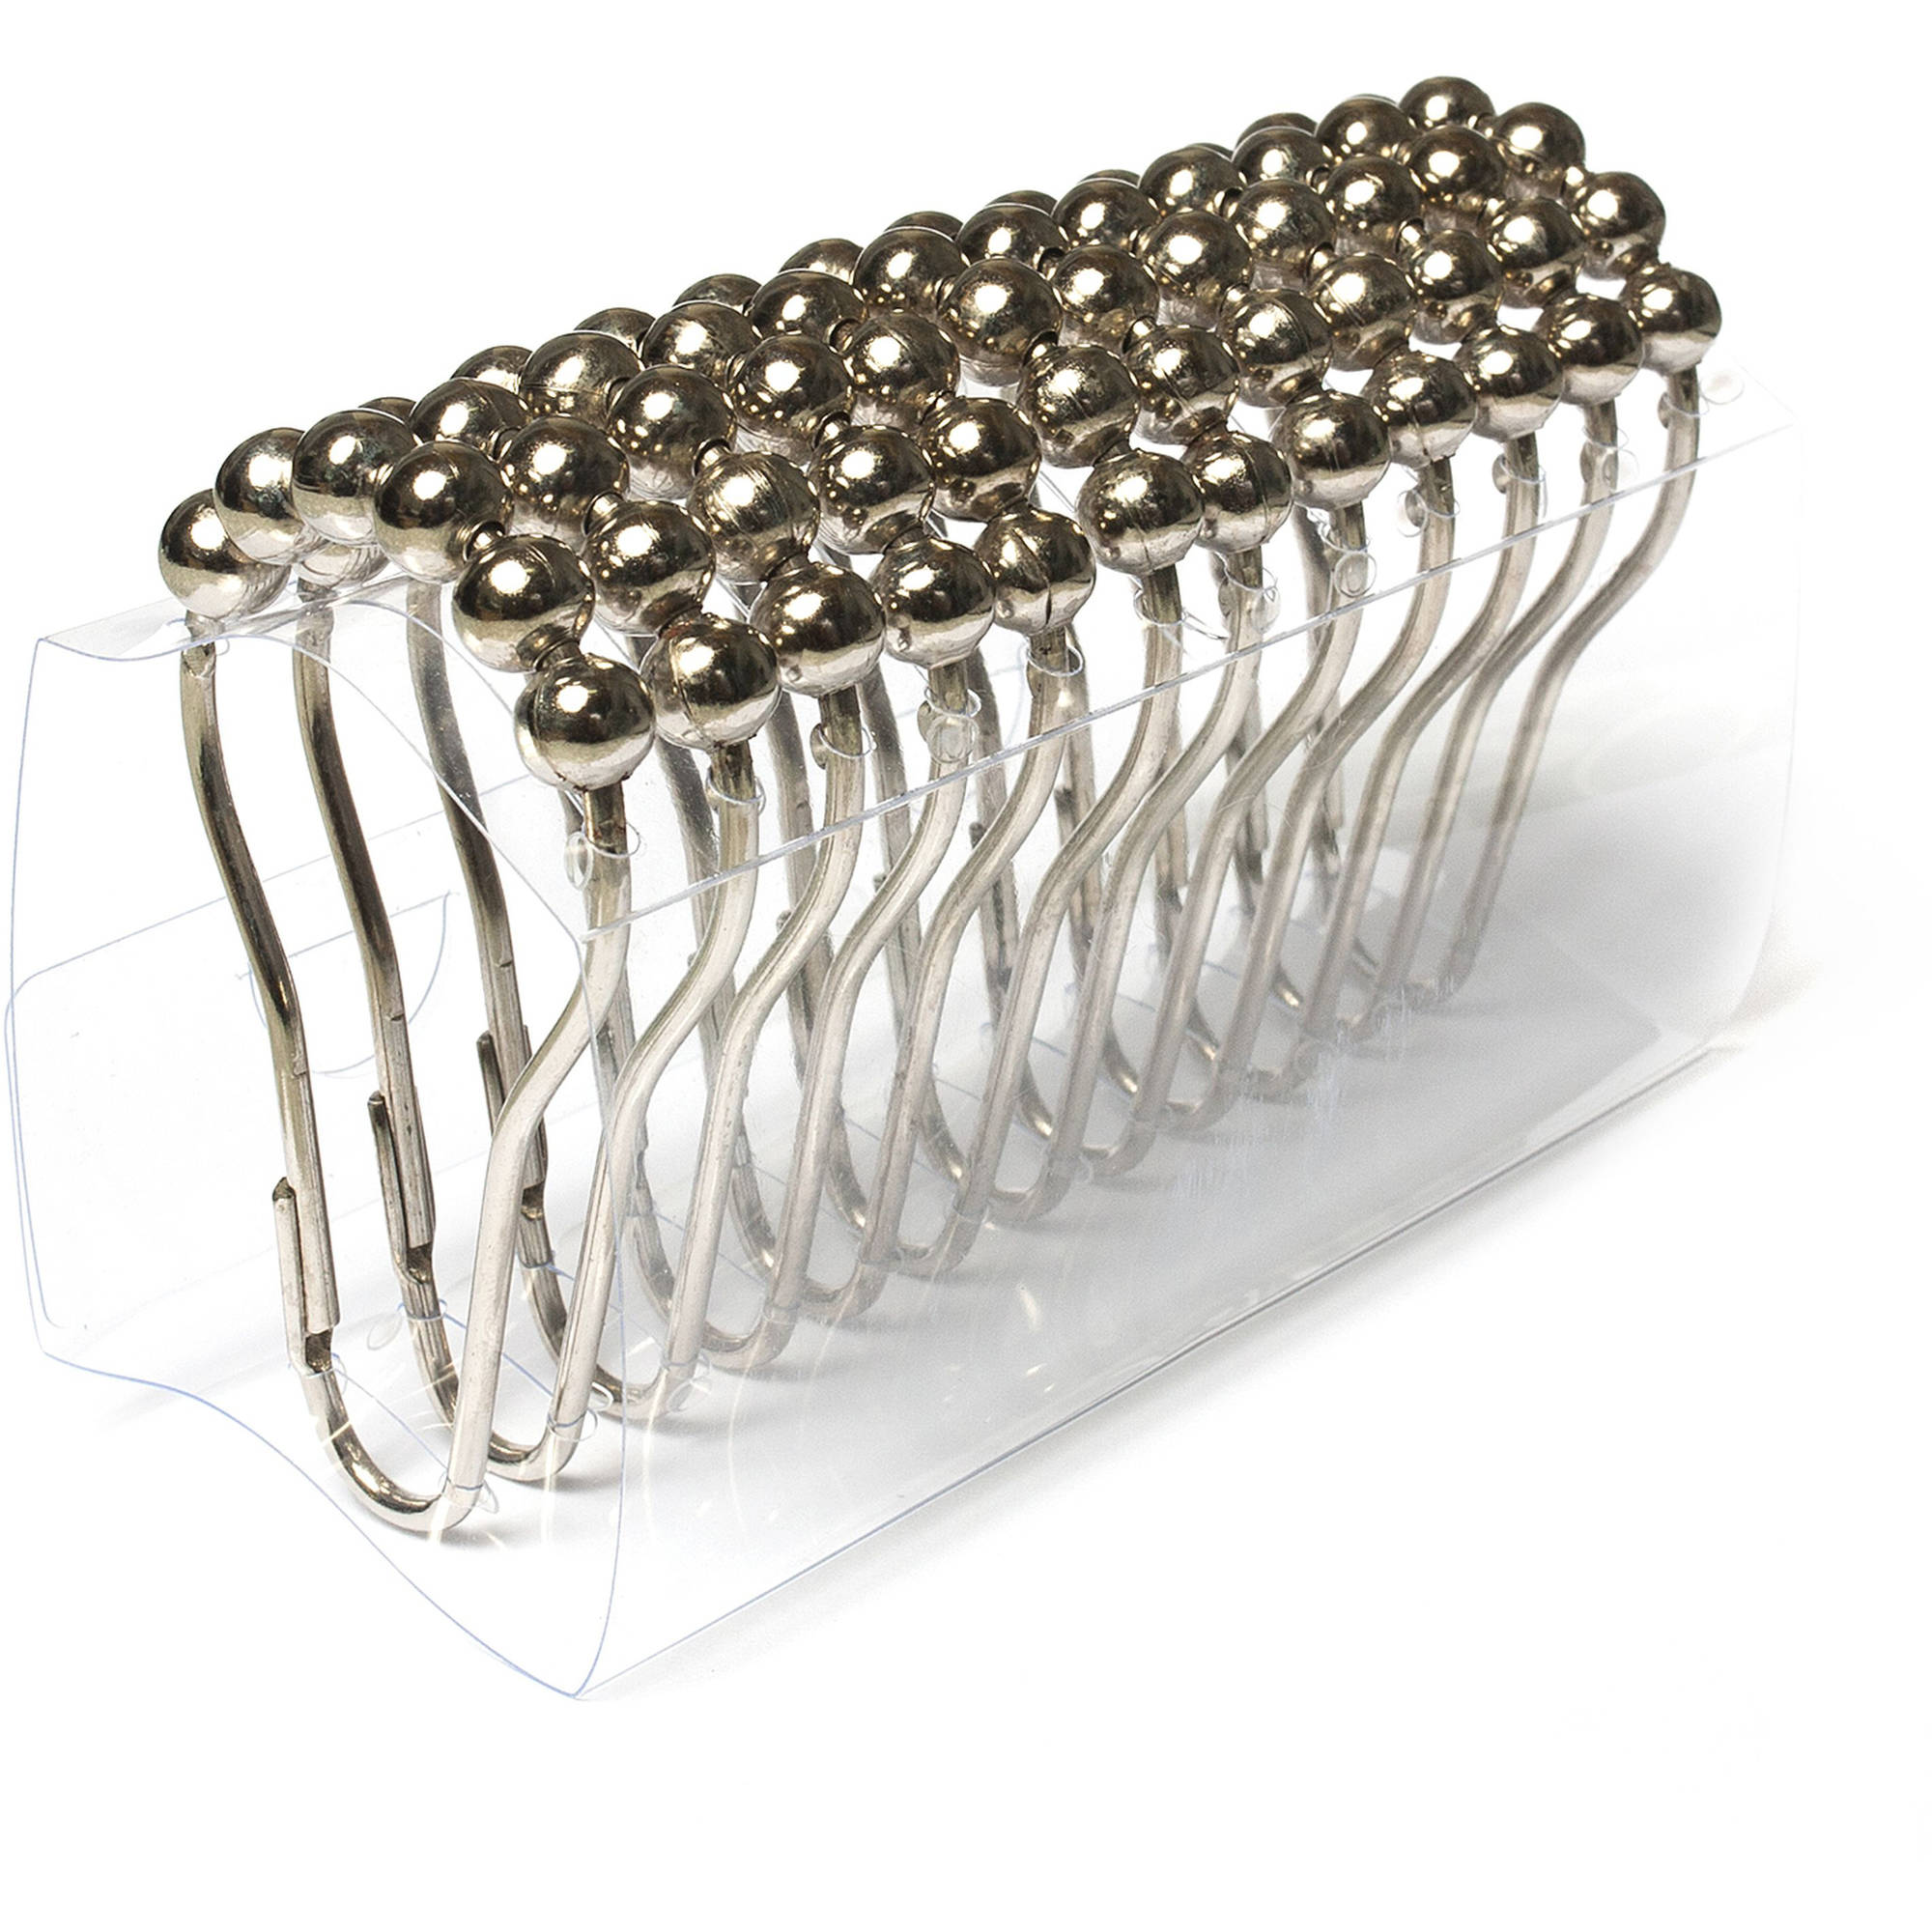 Shiny Roller Ball Chrome Bathroom Shower Curtain Rings Hooks, Set of 12